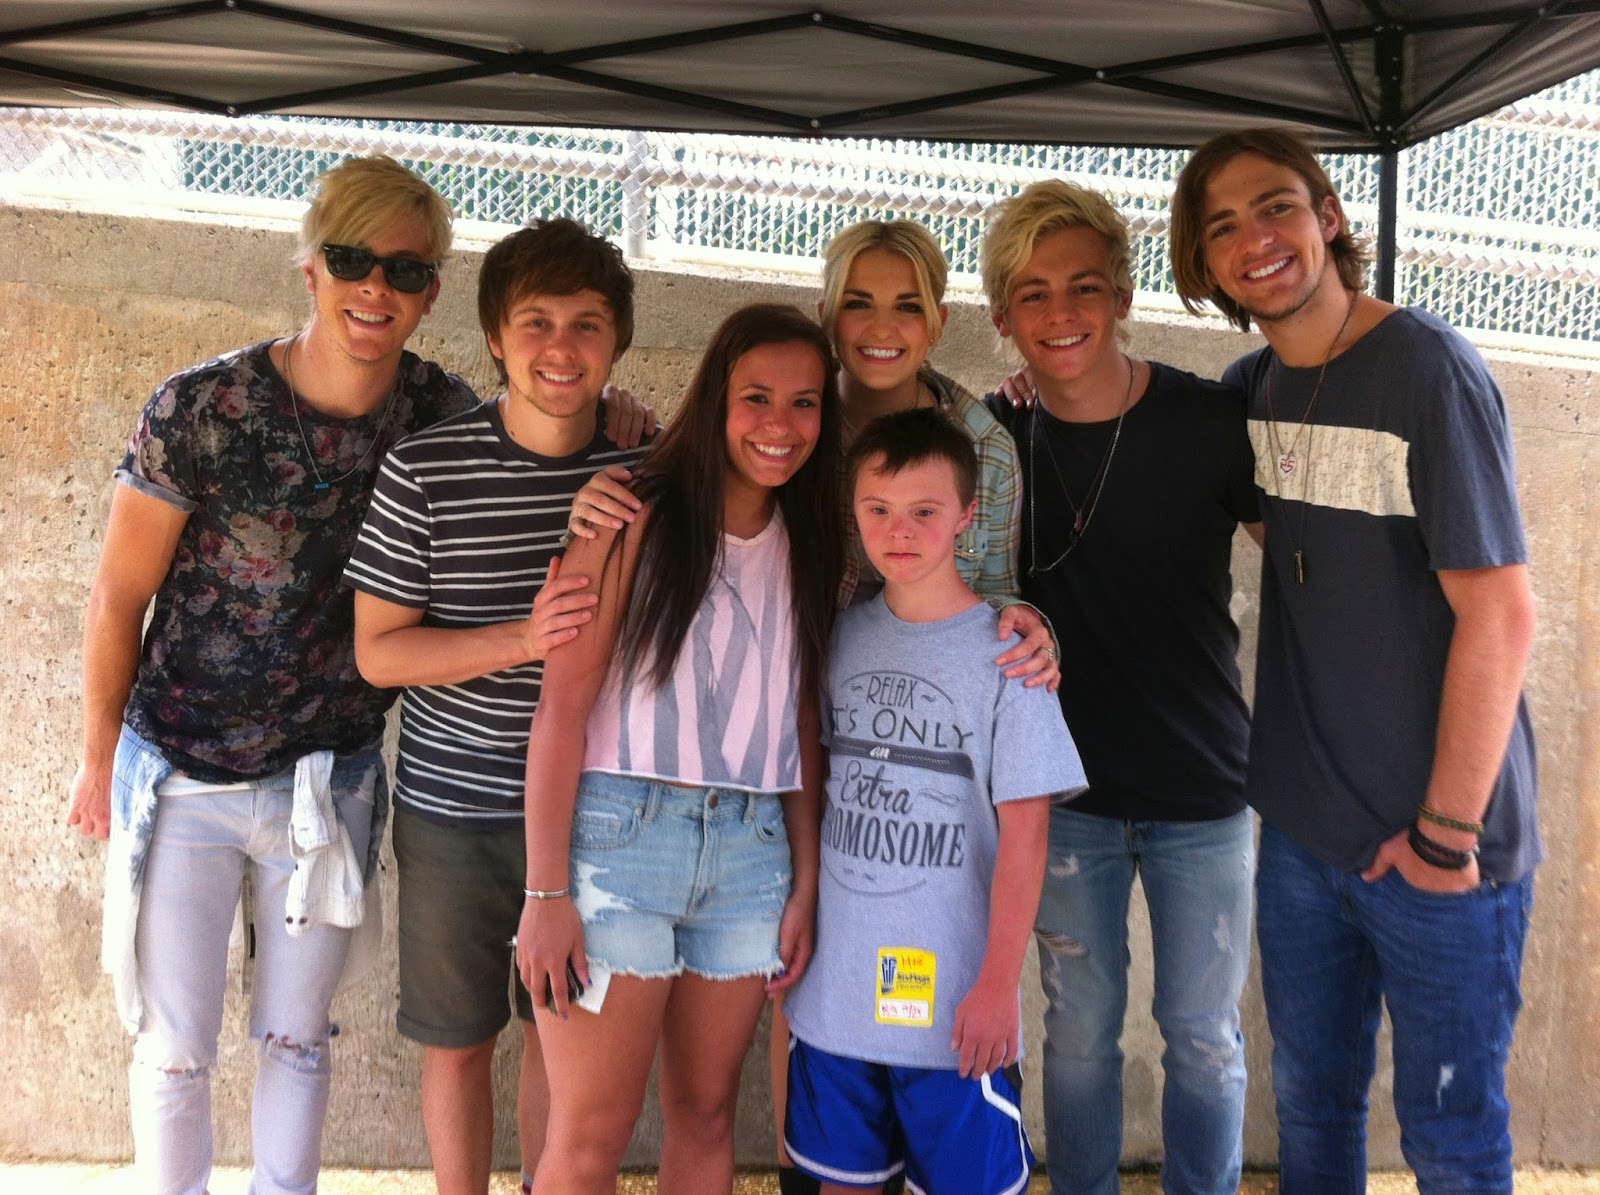 Colbys wish come true r5 meet and greet m4hsunfo